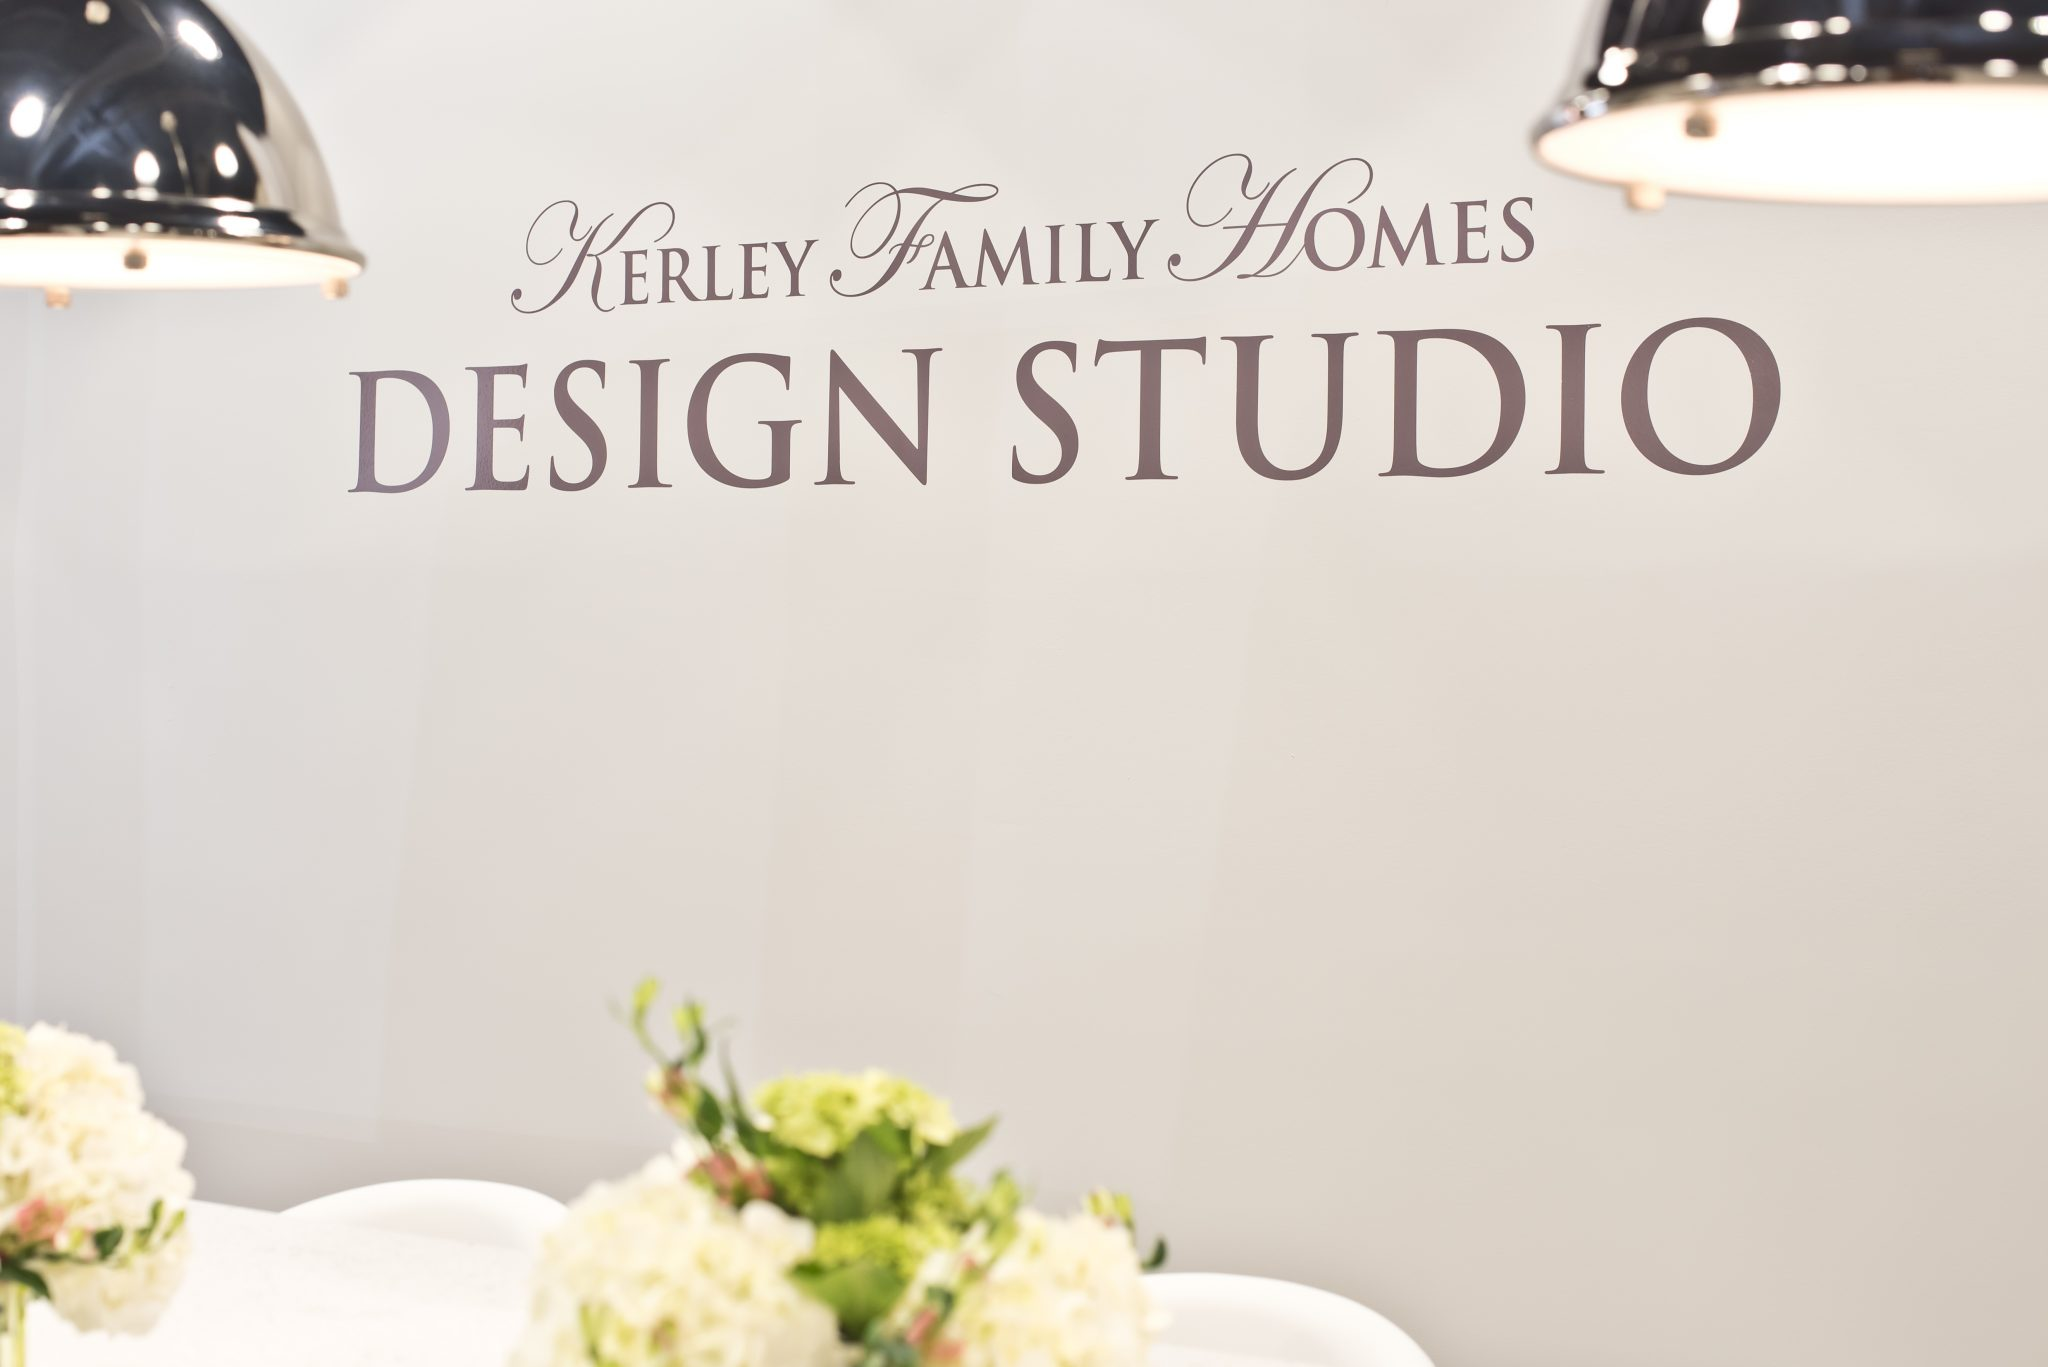 The kerley family homes design studio